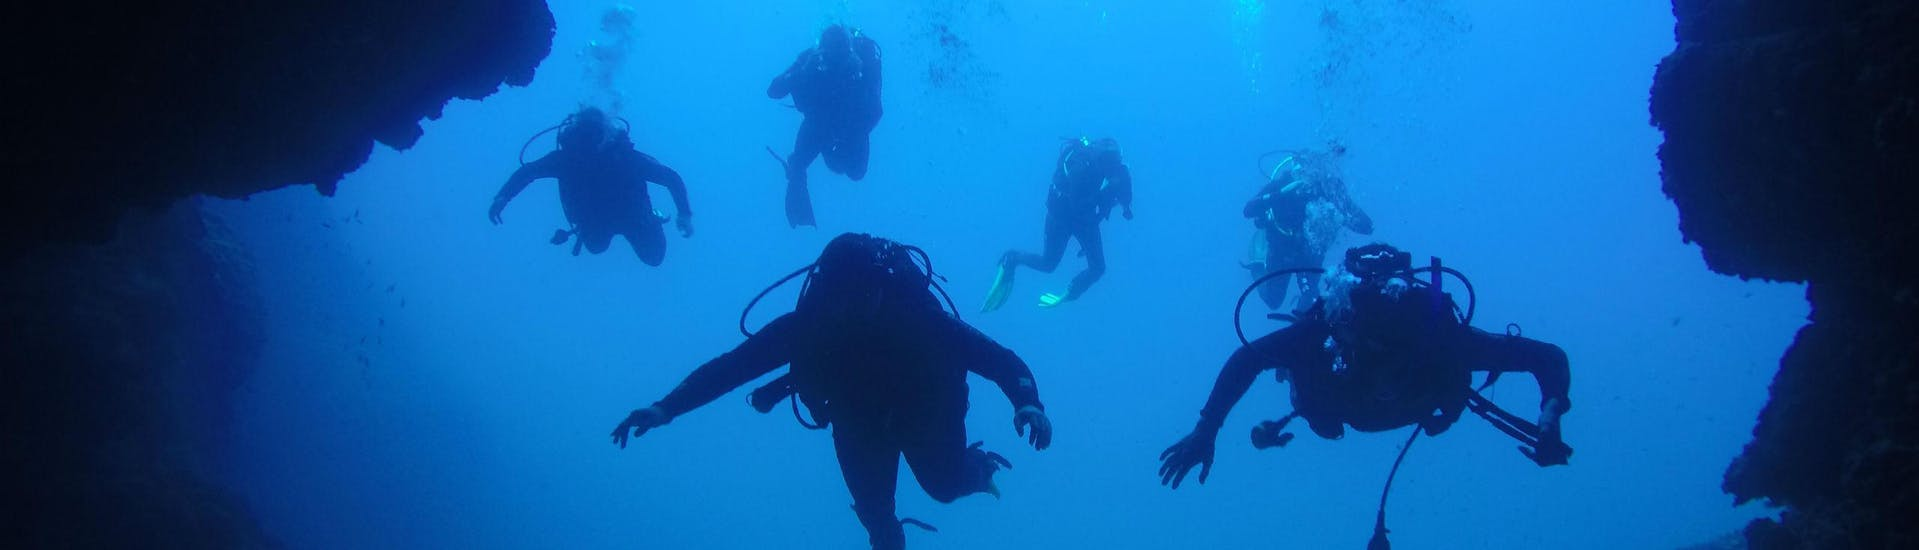 scuba-diving---guided-dives-from-dubrovnik-blue-planet-diving-center-hero